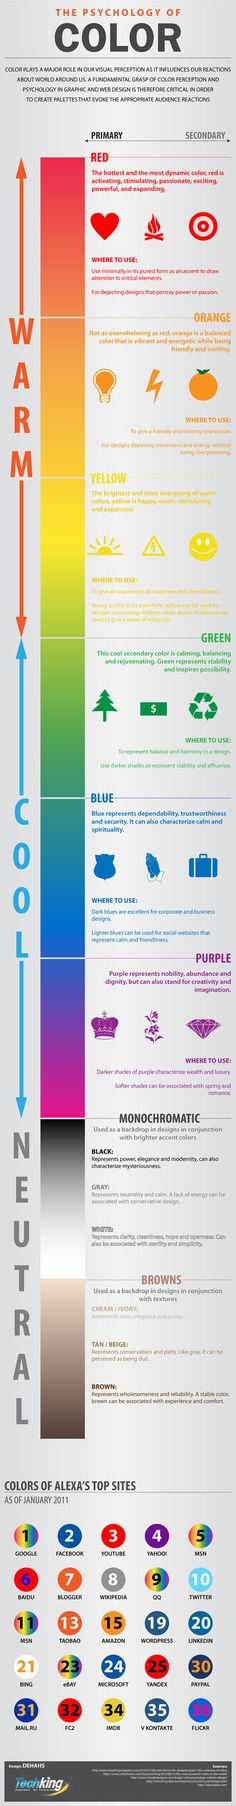 The Psychology and Use of Color in Branding and Marketing Design